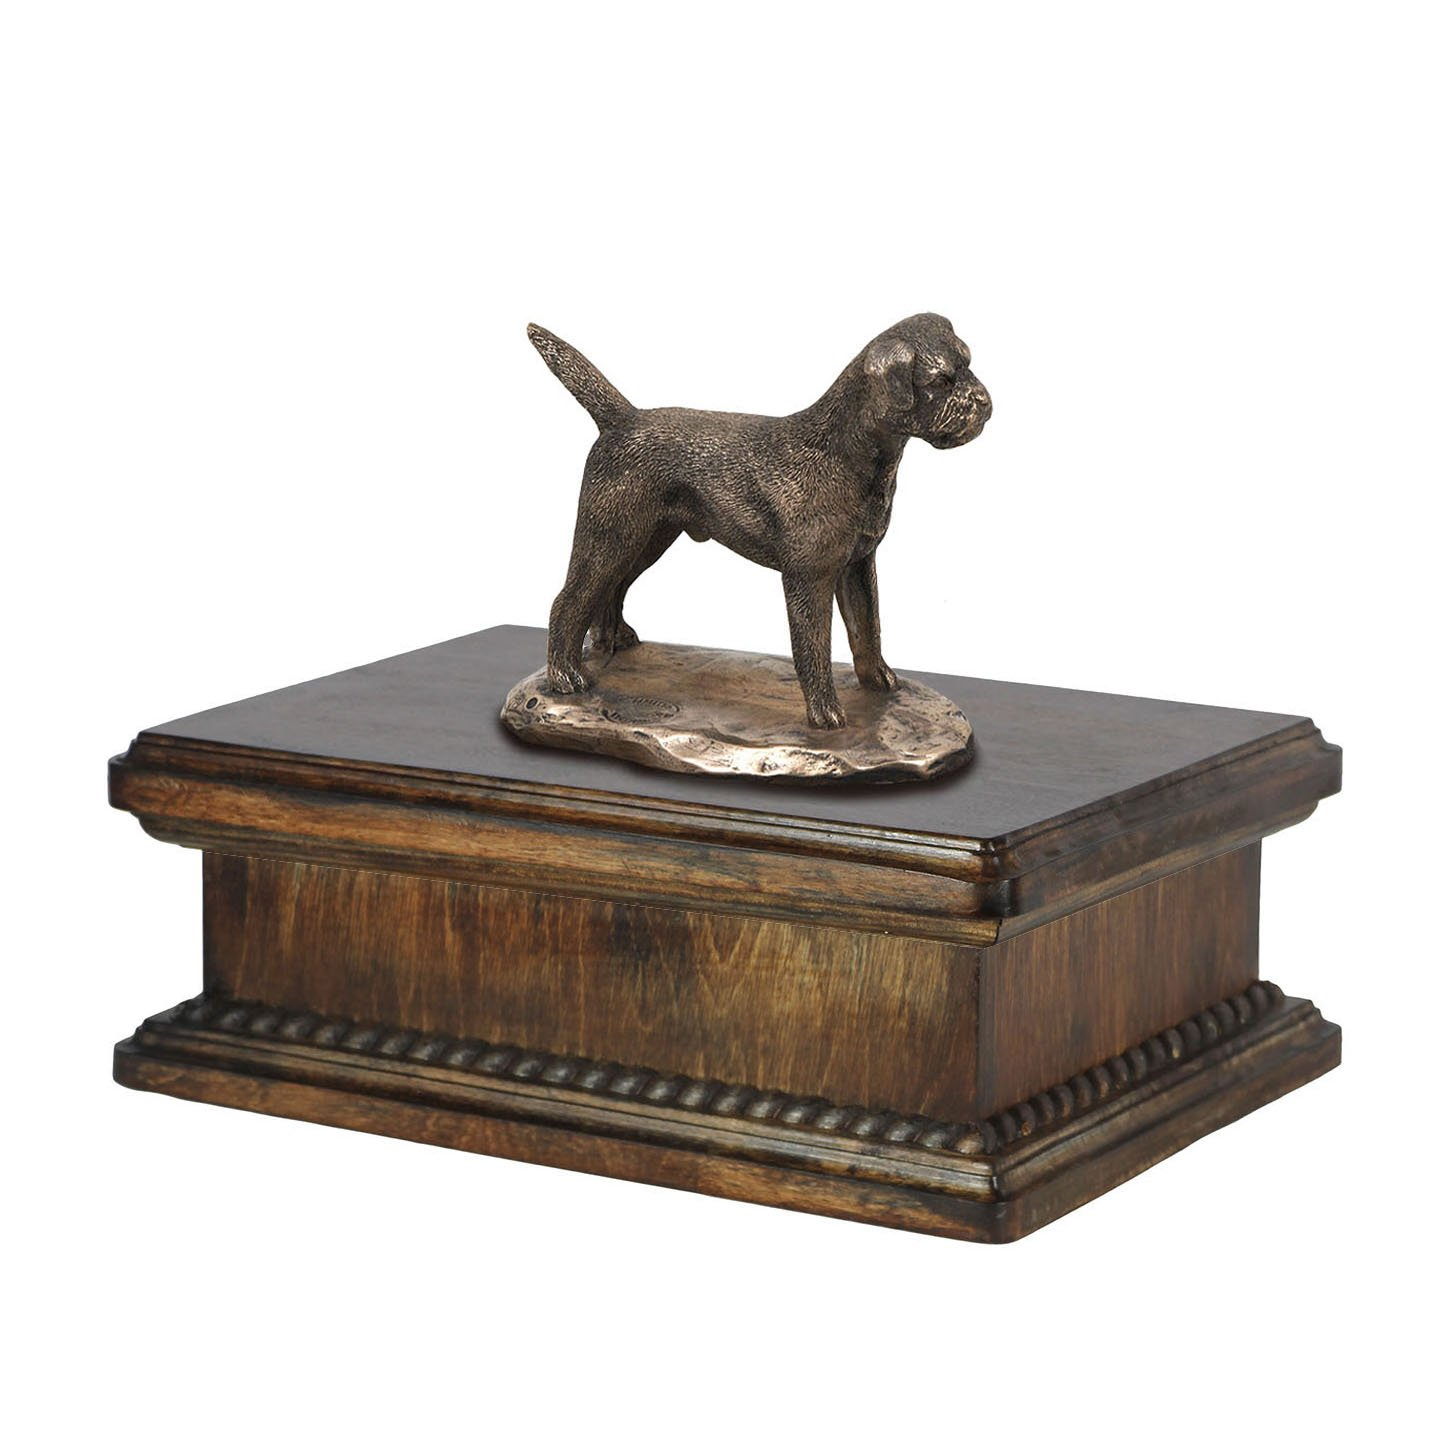 Border Terrier, memorial, urn for dog's ashes, with dog statue, exclusive, ArtDog